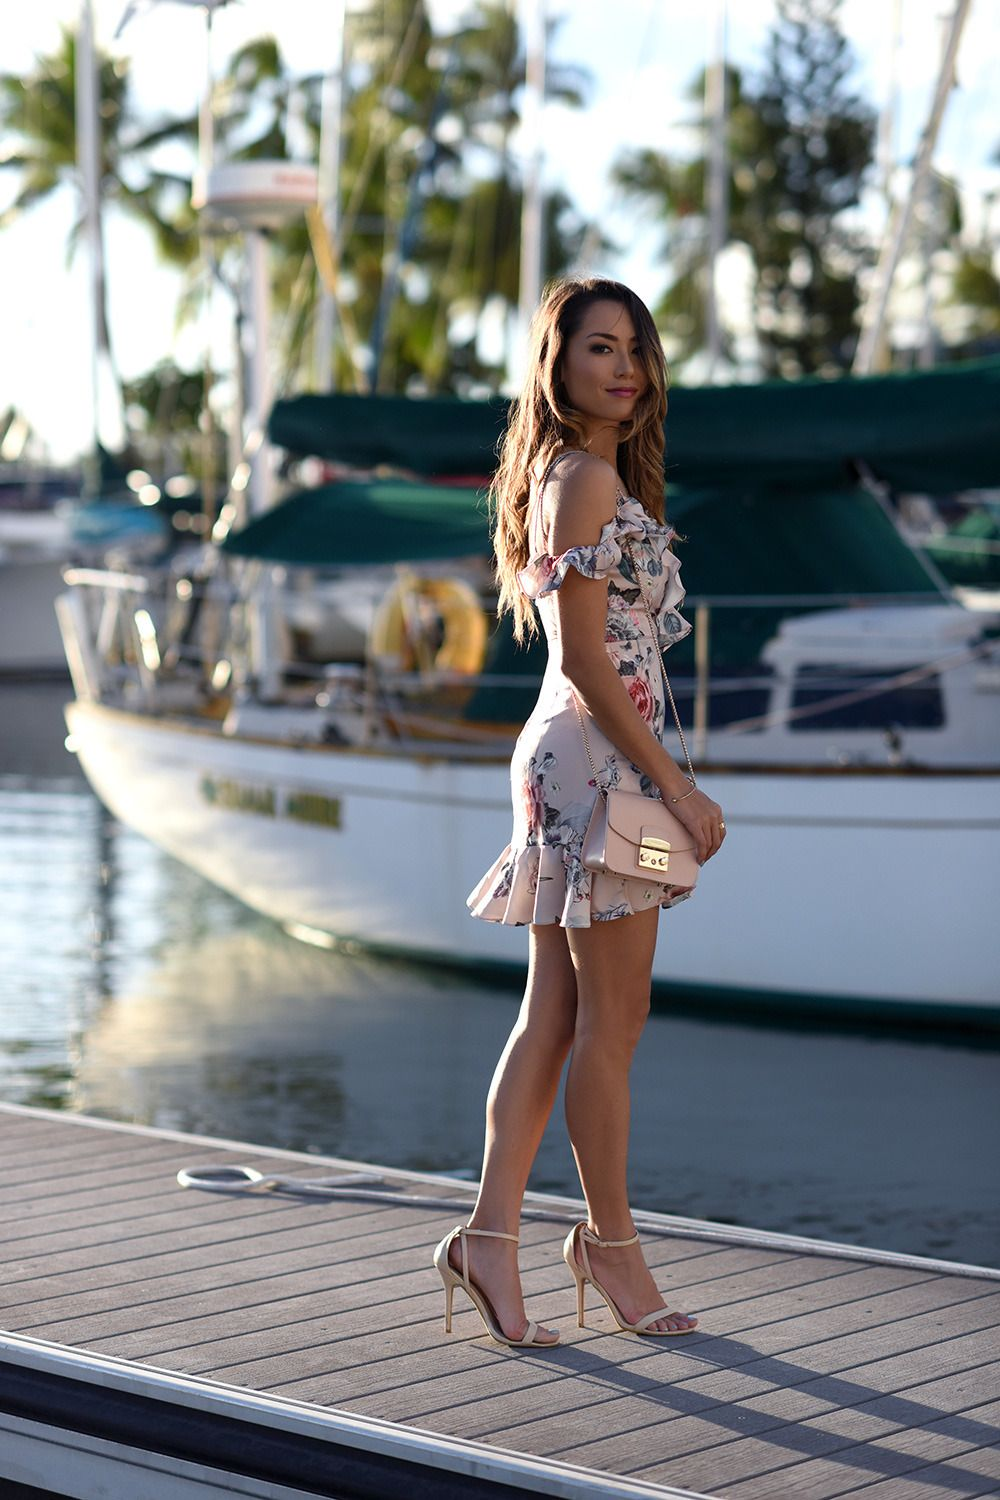 Pin by Dean Mineall on Dresses  Pinterest  Western girl Jessica